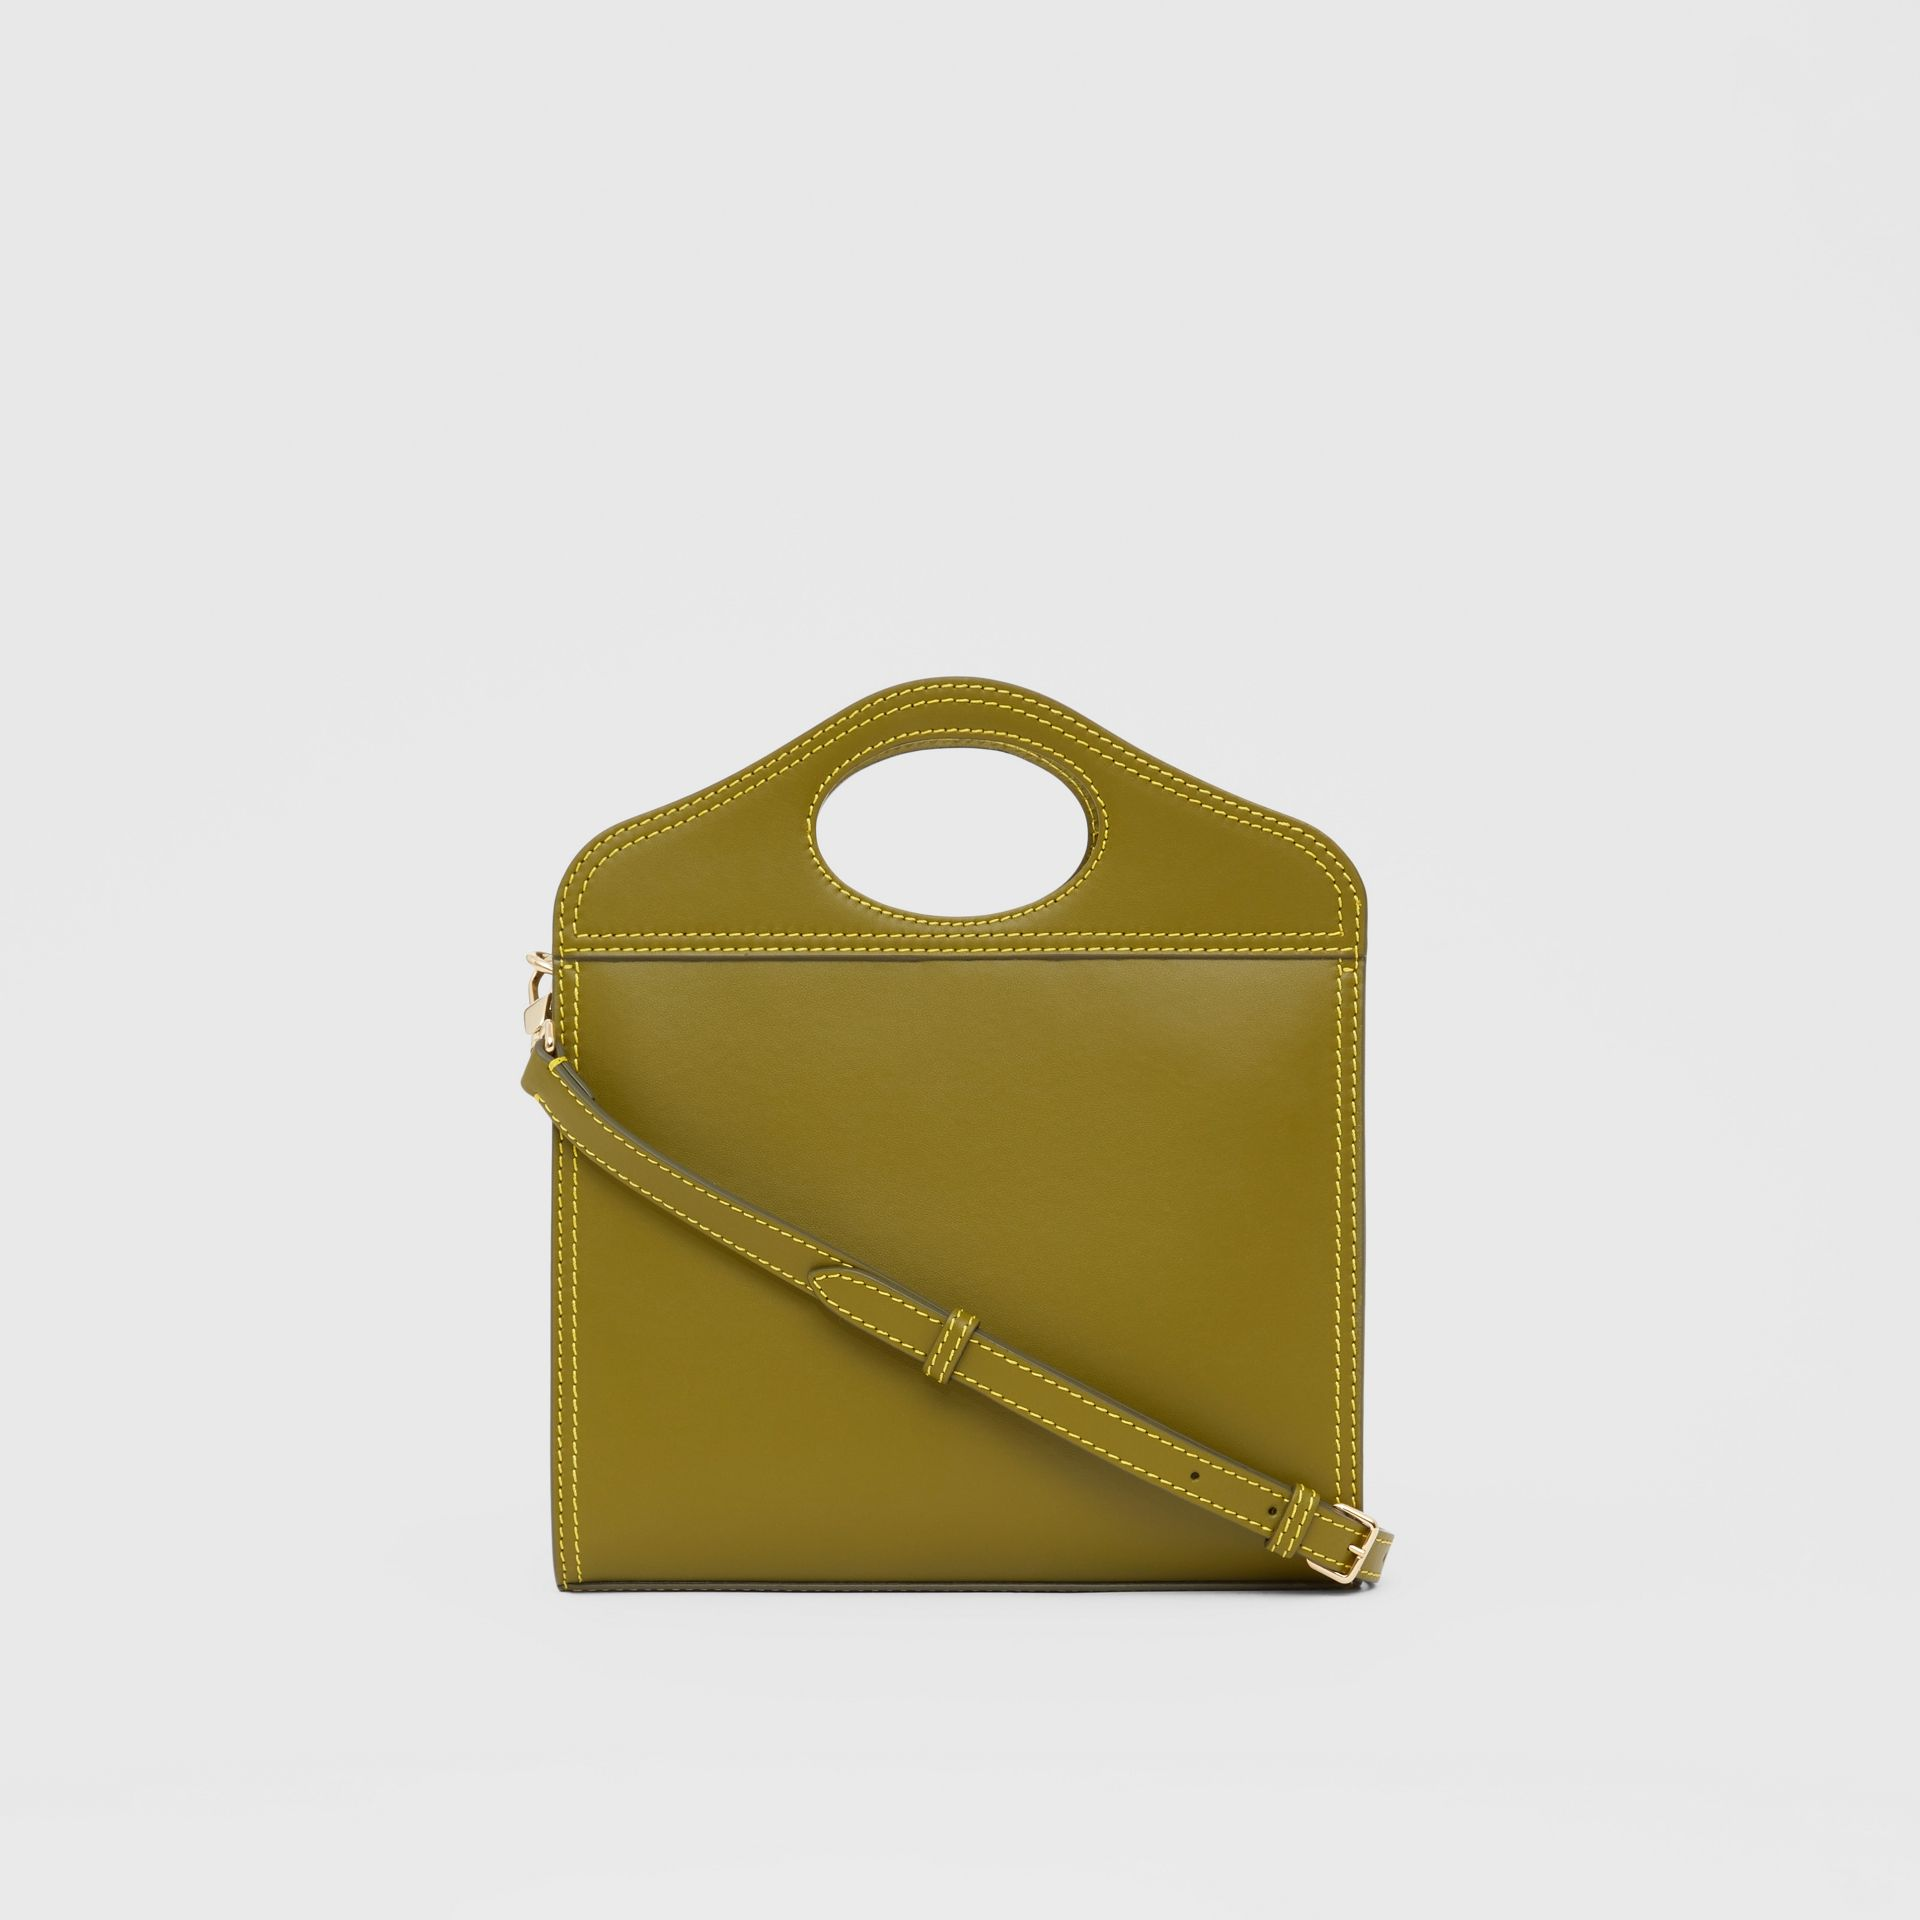 Mini Topstitched Leather Pocket Bag in Juniper Green - Women | Burberry - gallery image 7